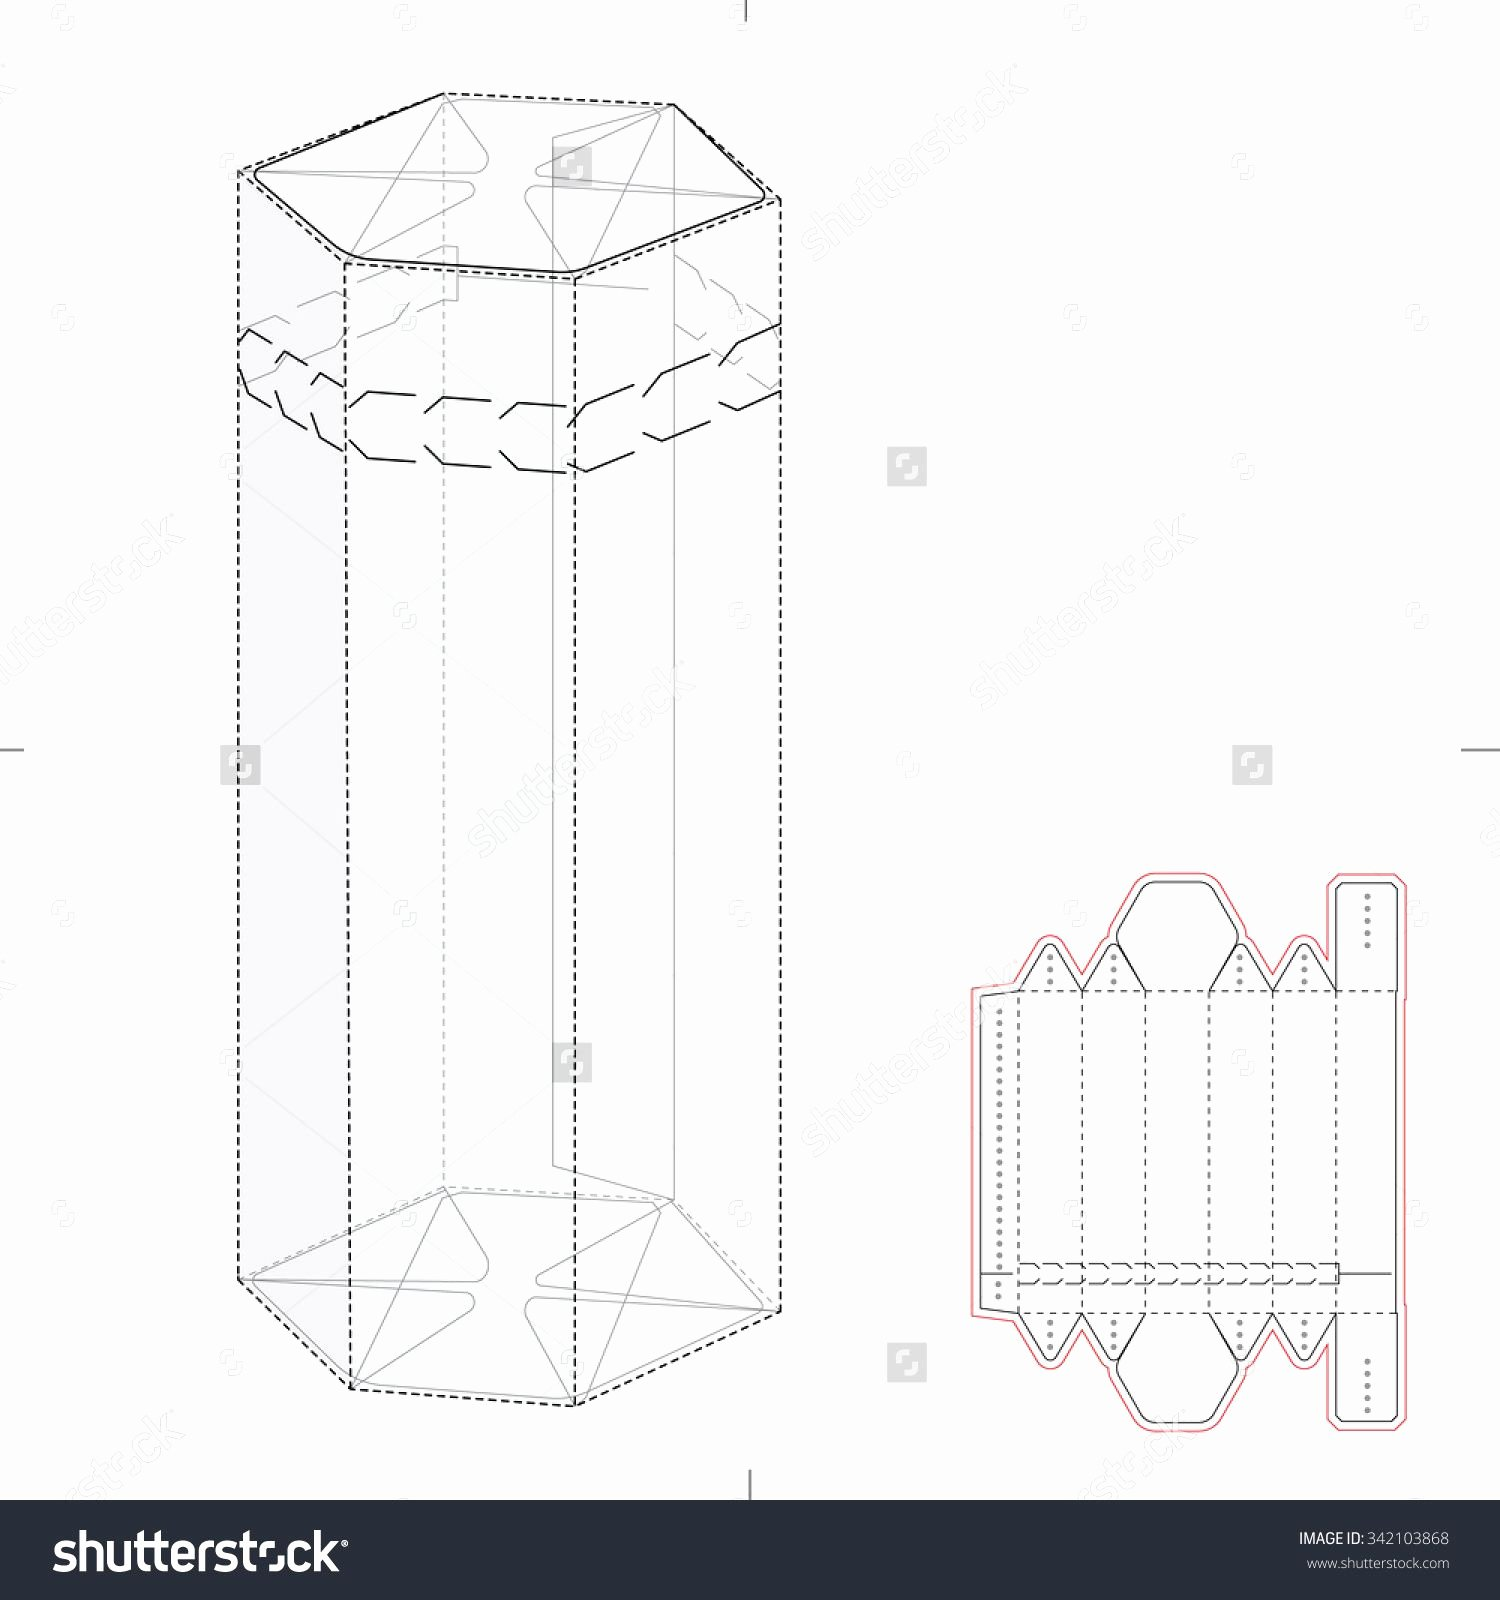 Hexagonal Box with Die Cut Template Stock Vector